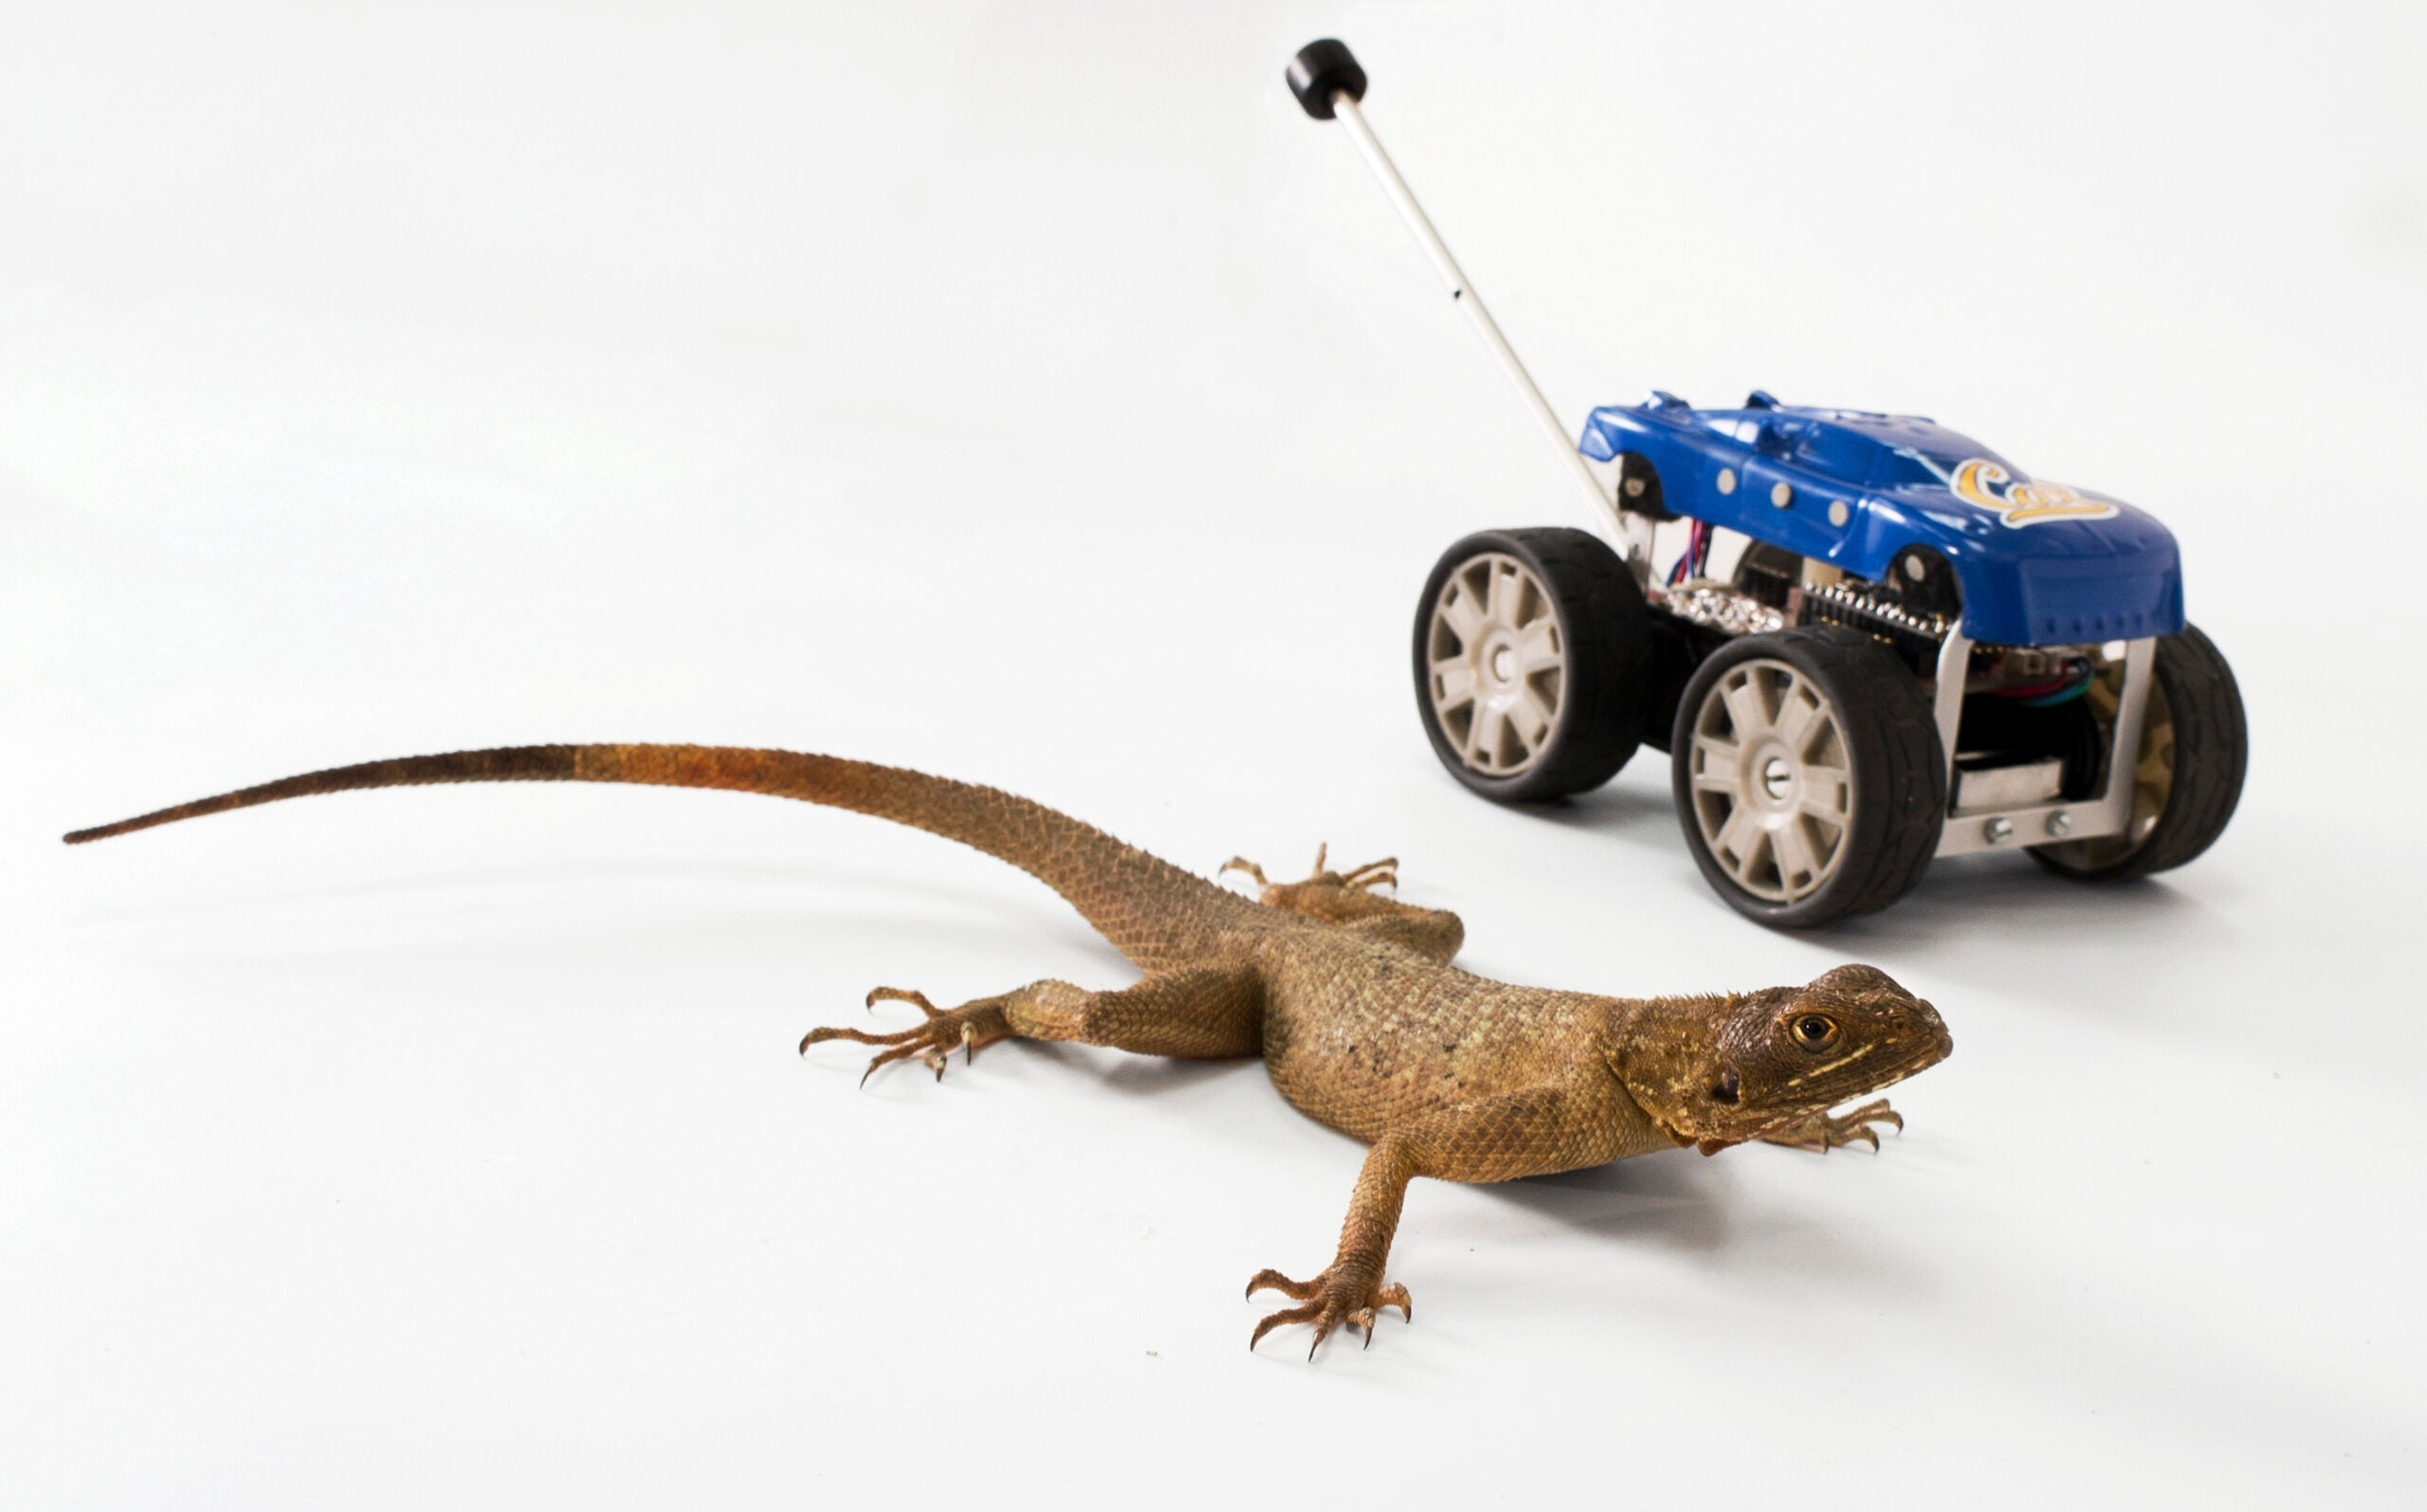 Video: Leaping Lizards' Helpful Tails Inspire New Robot Design